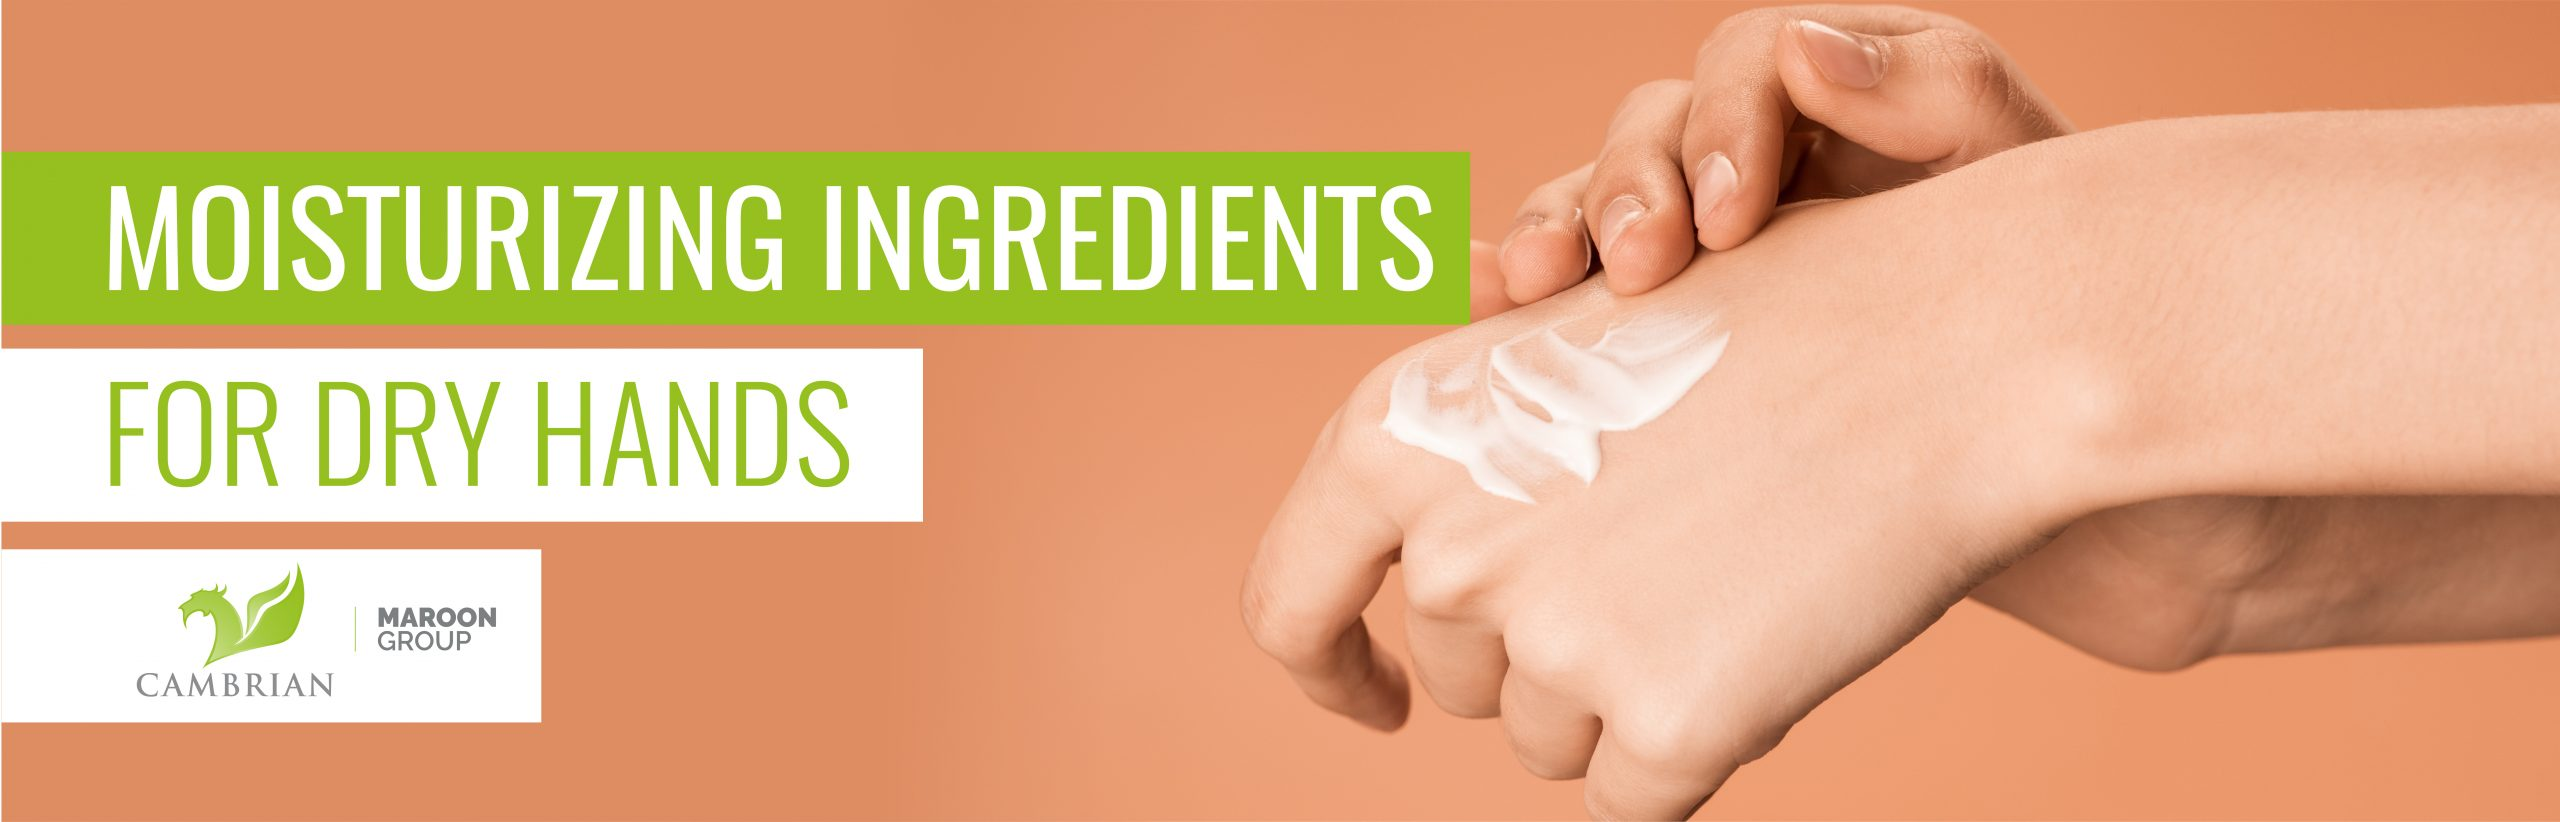 Moisturizing Ingredients for Dry Hands